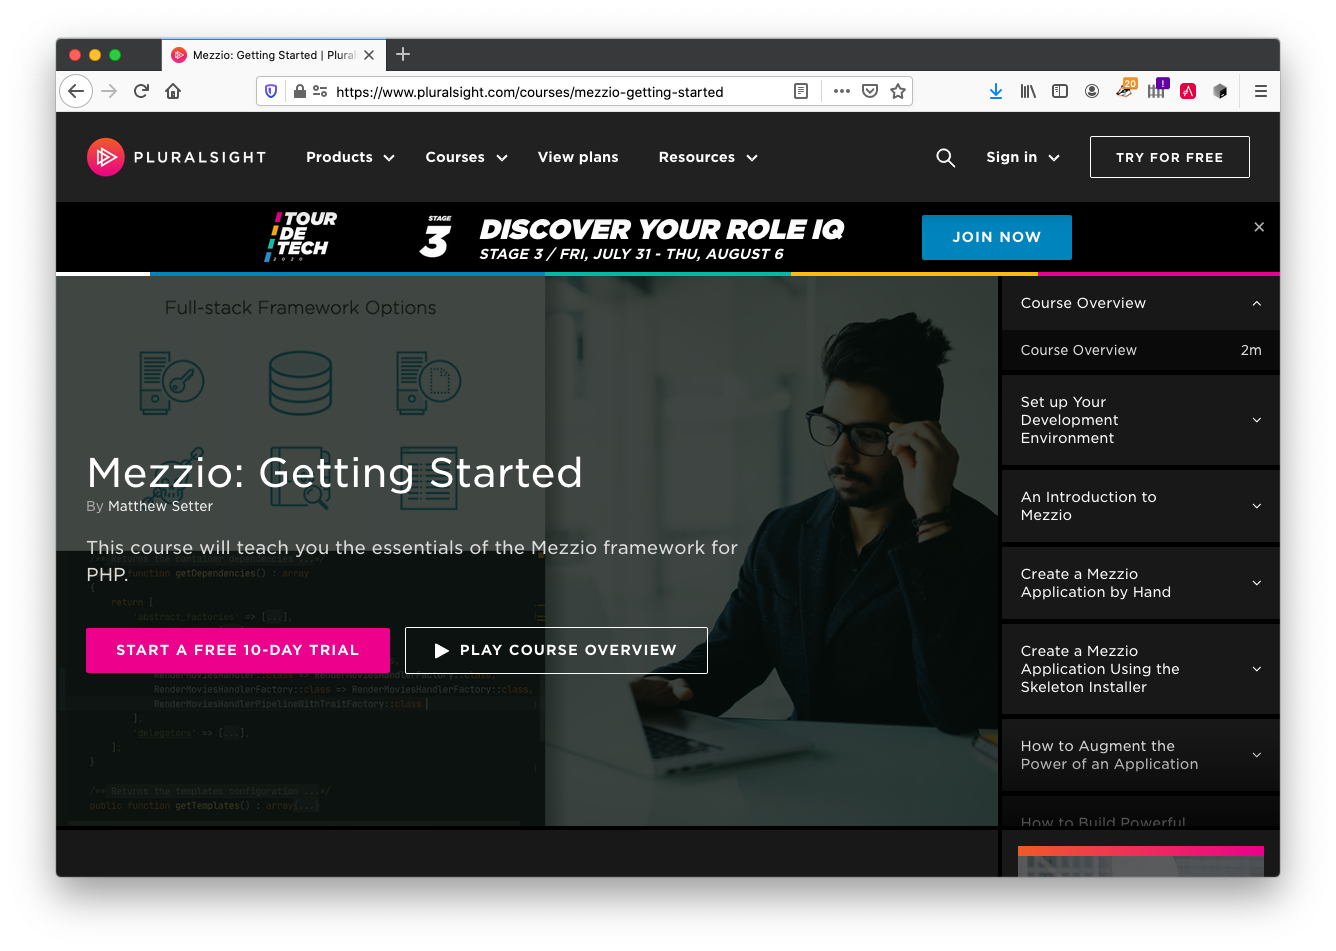 Mezzio: Getting Started, on Pluralsight, by Matthew Setter